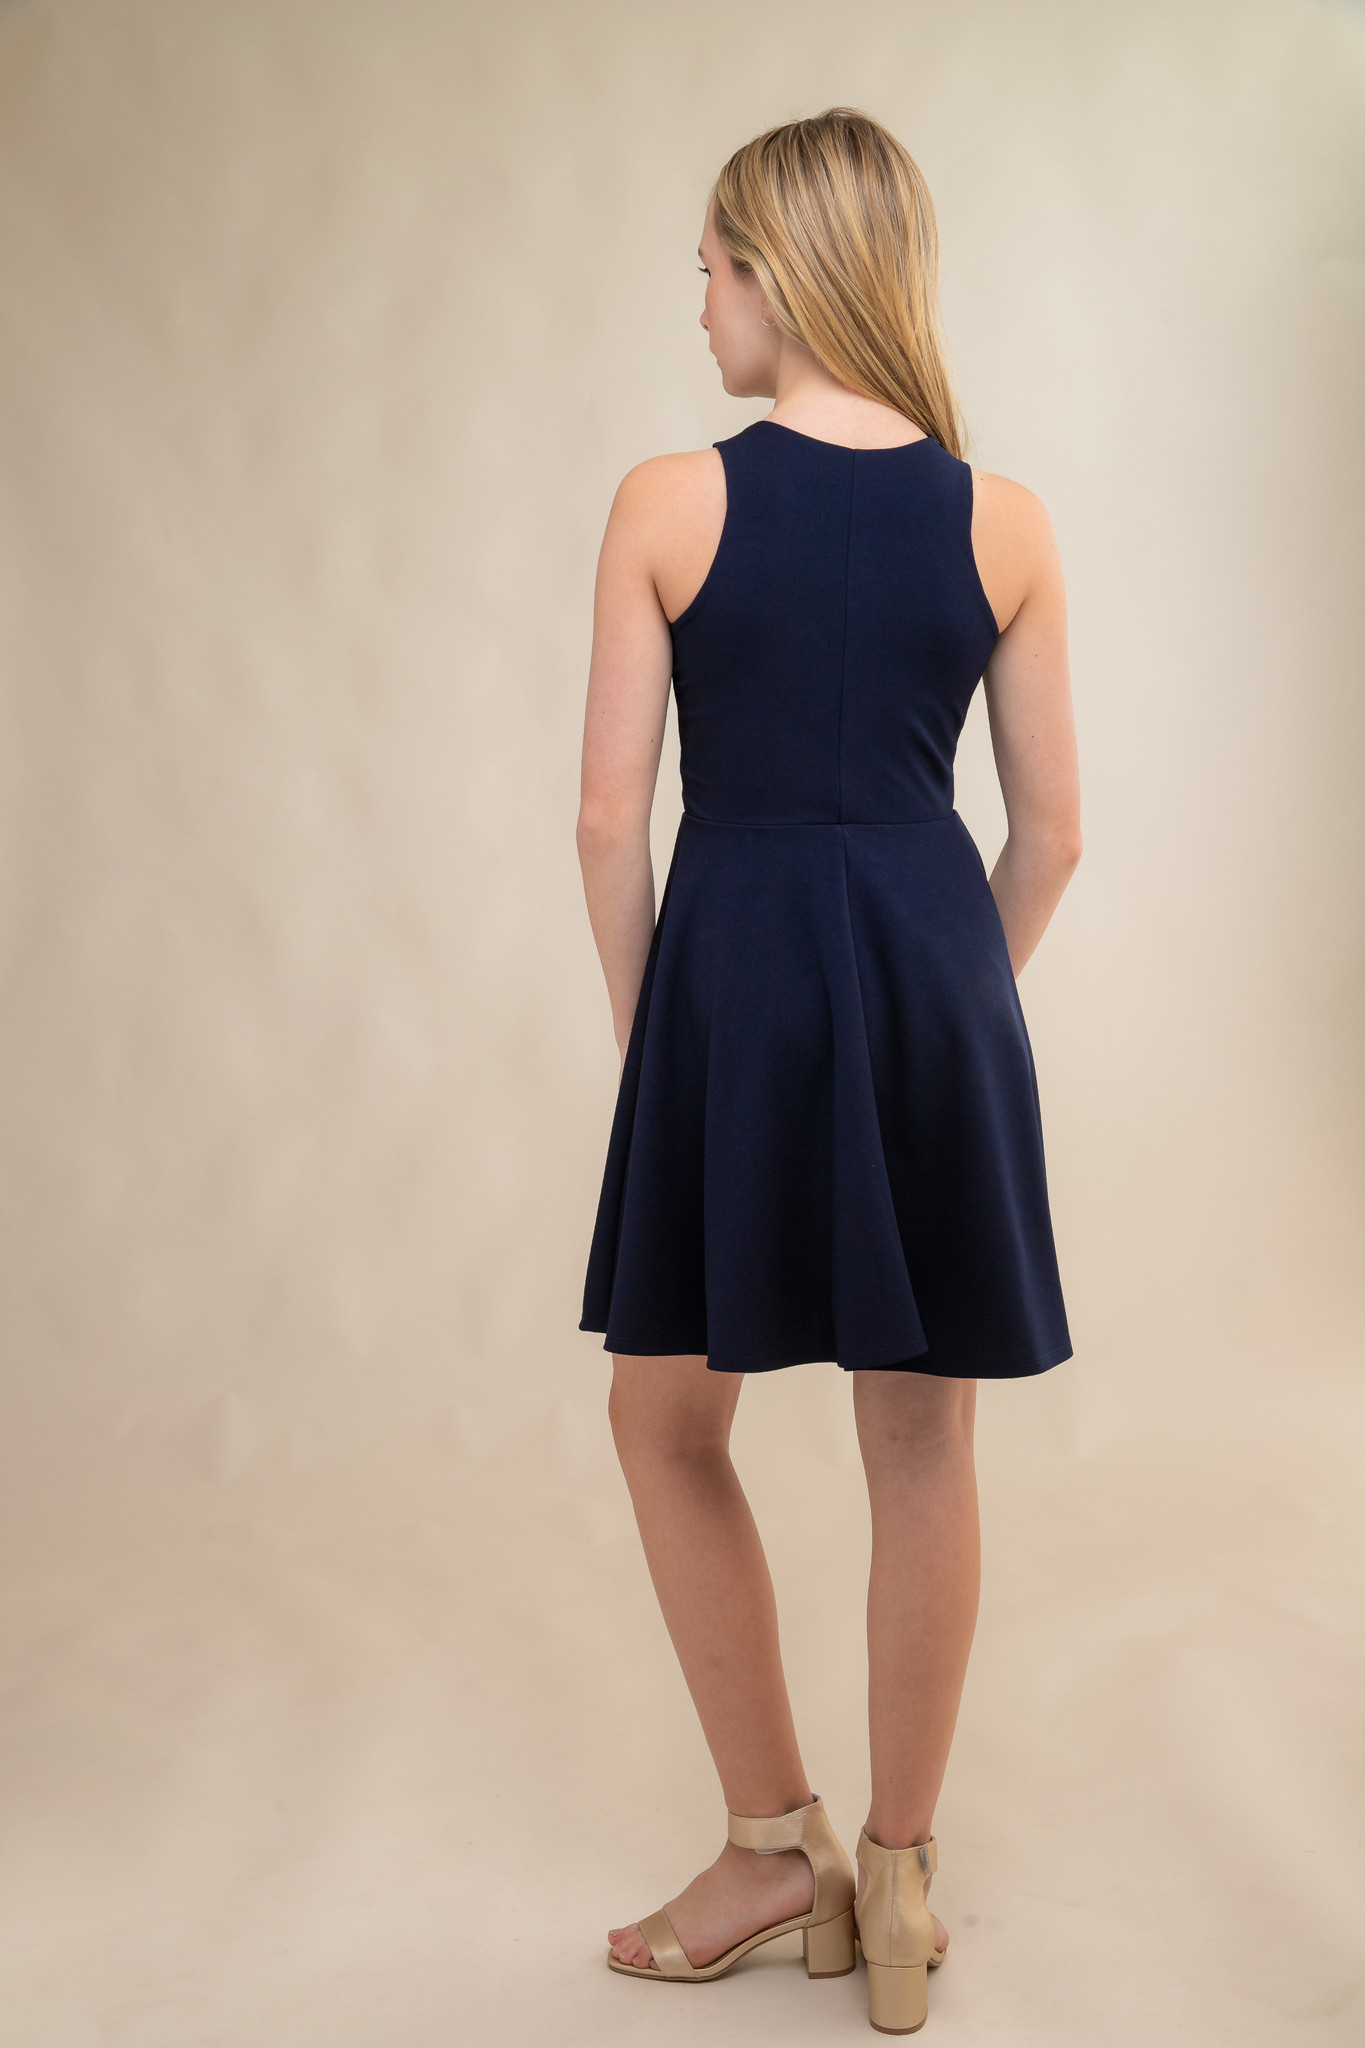 Navy Texture Racer Back Dress in Longer Length back.